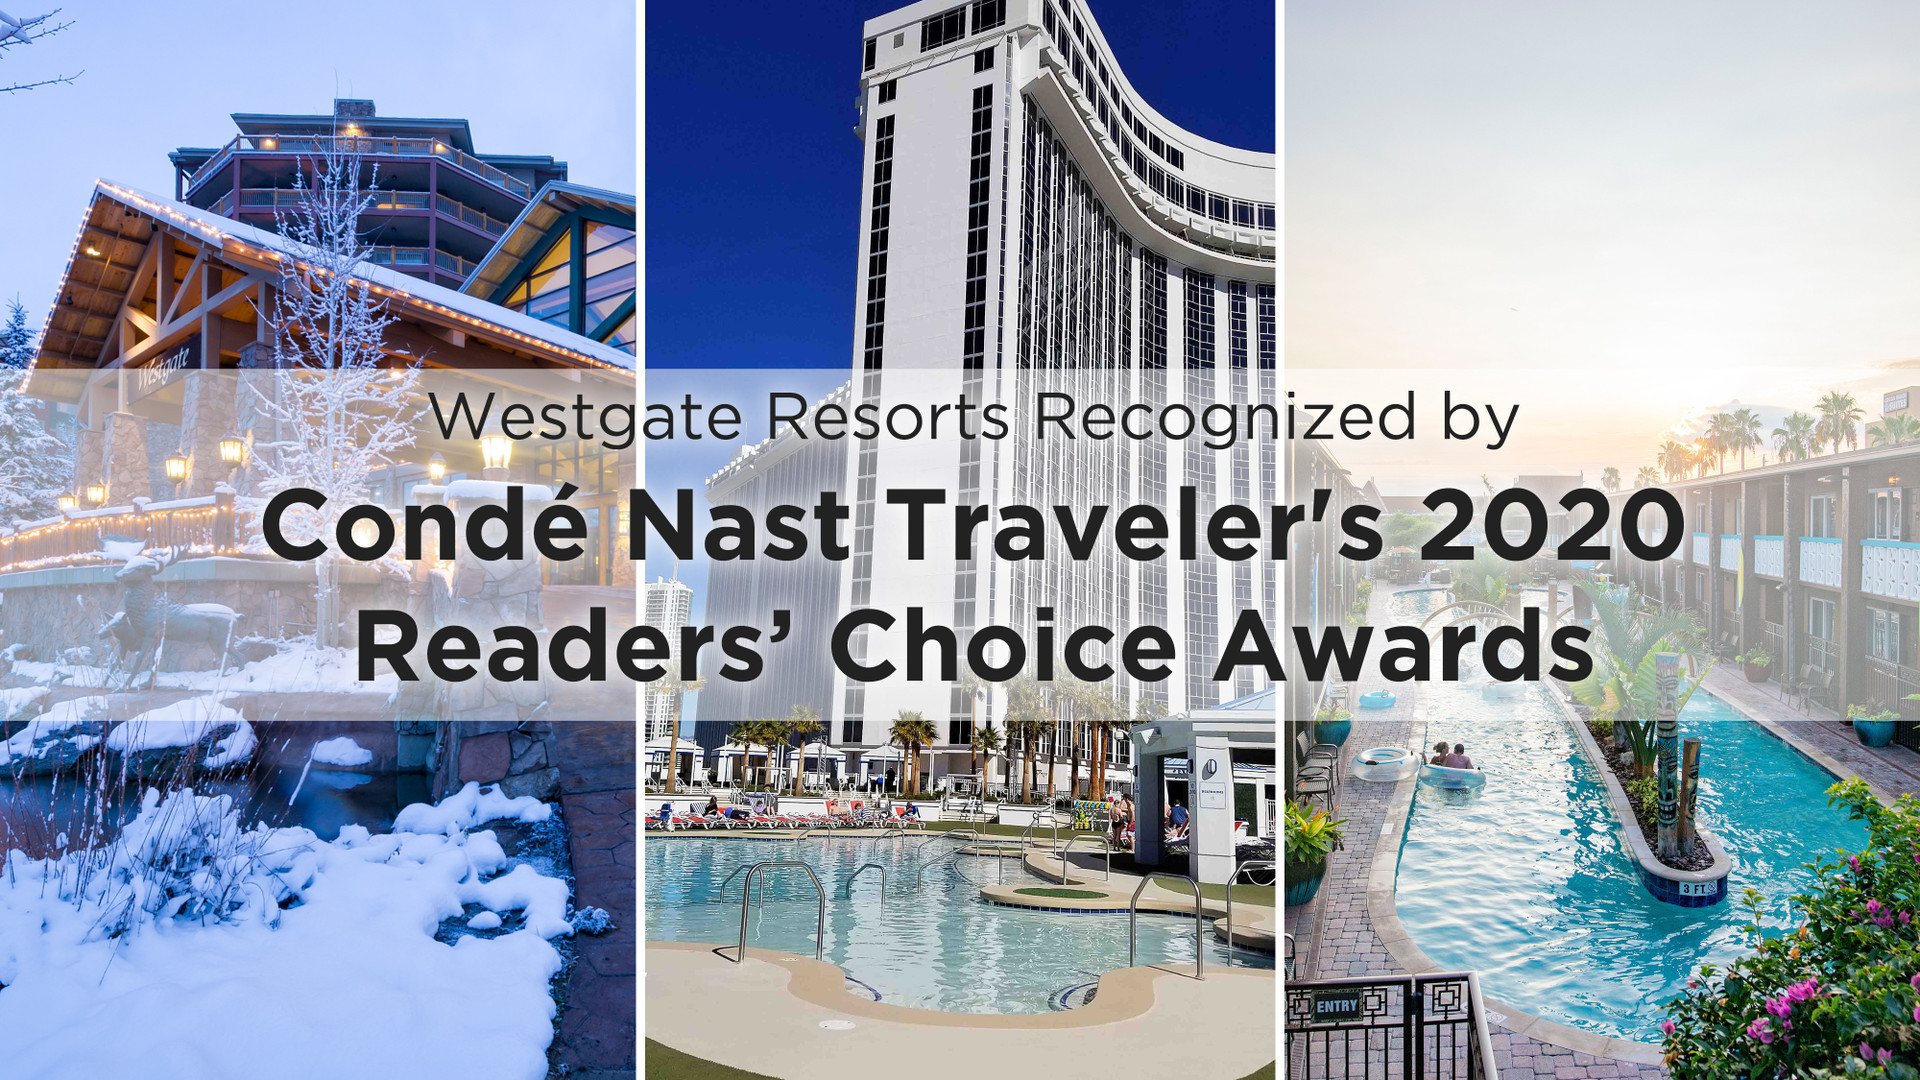 Westgate Resorts Recognized by Condé Nast Traveler's 2020 Readers' Choice Awards